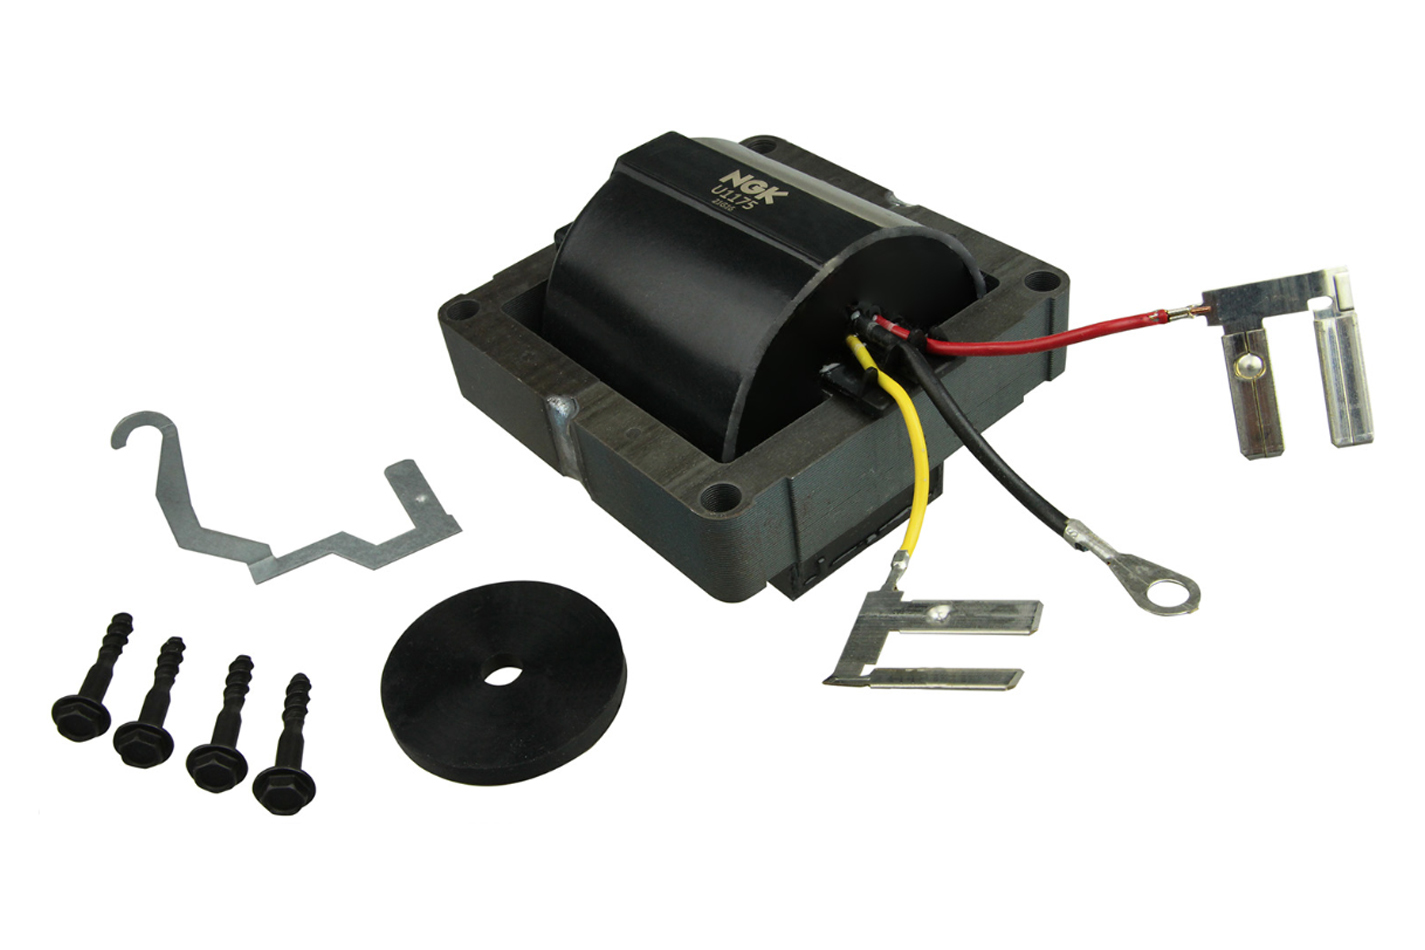 NGK U1175 Ignition Coil, Male HEI Style, OE Specs, 3 Pressure Contact Terminals, Electronic Ignition, Black, Each